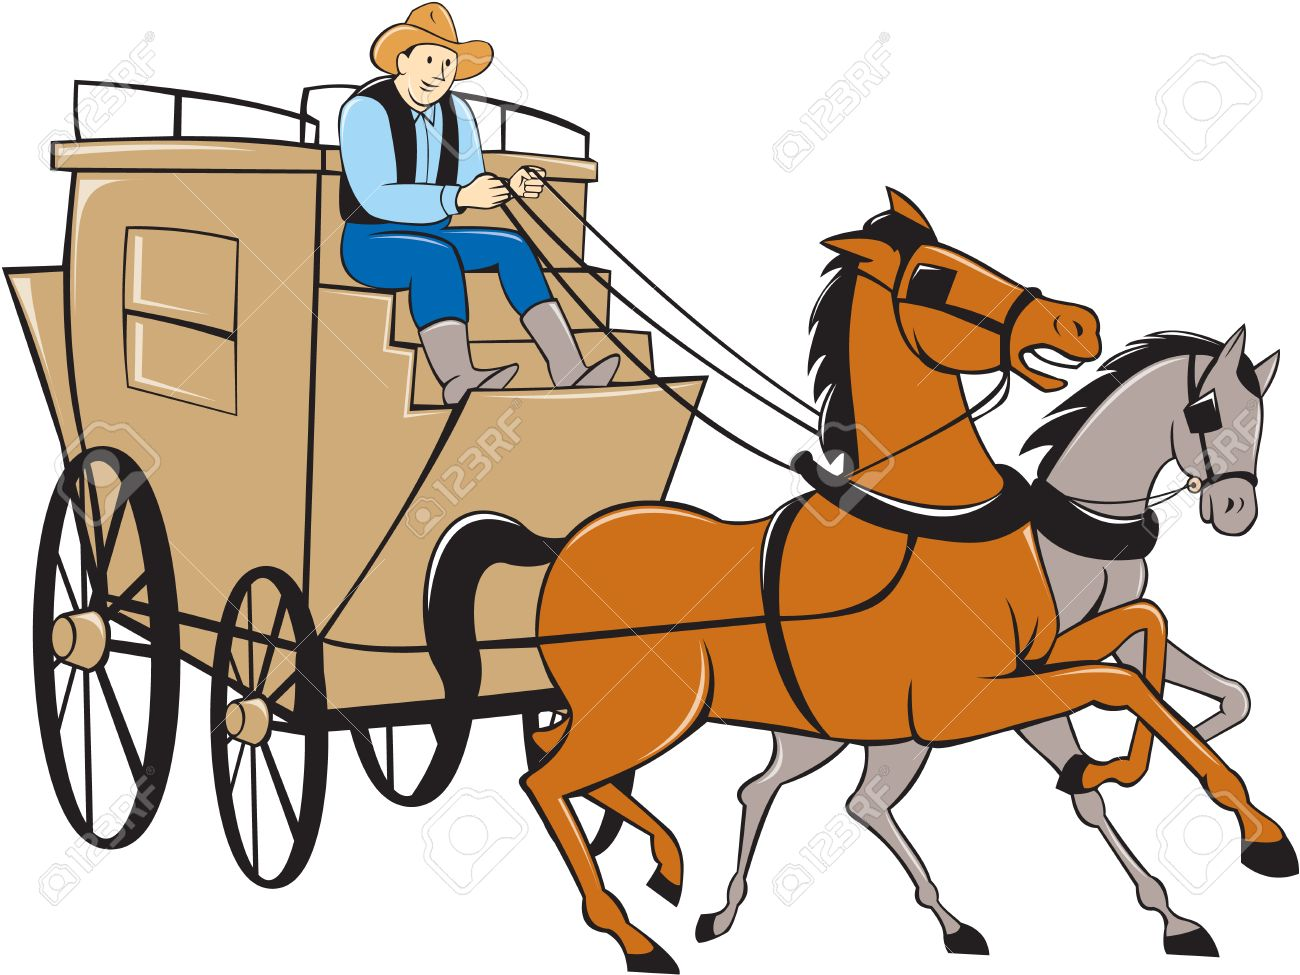 Illustration of a stagecoach driver riding a carriage driving two horses on isolated white background done in cartoon style. - 36303260